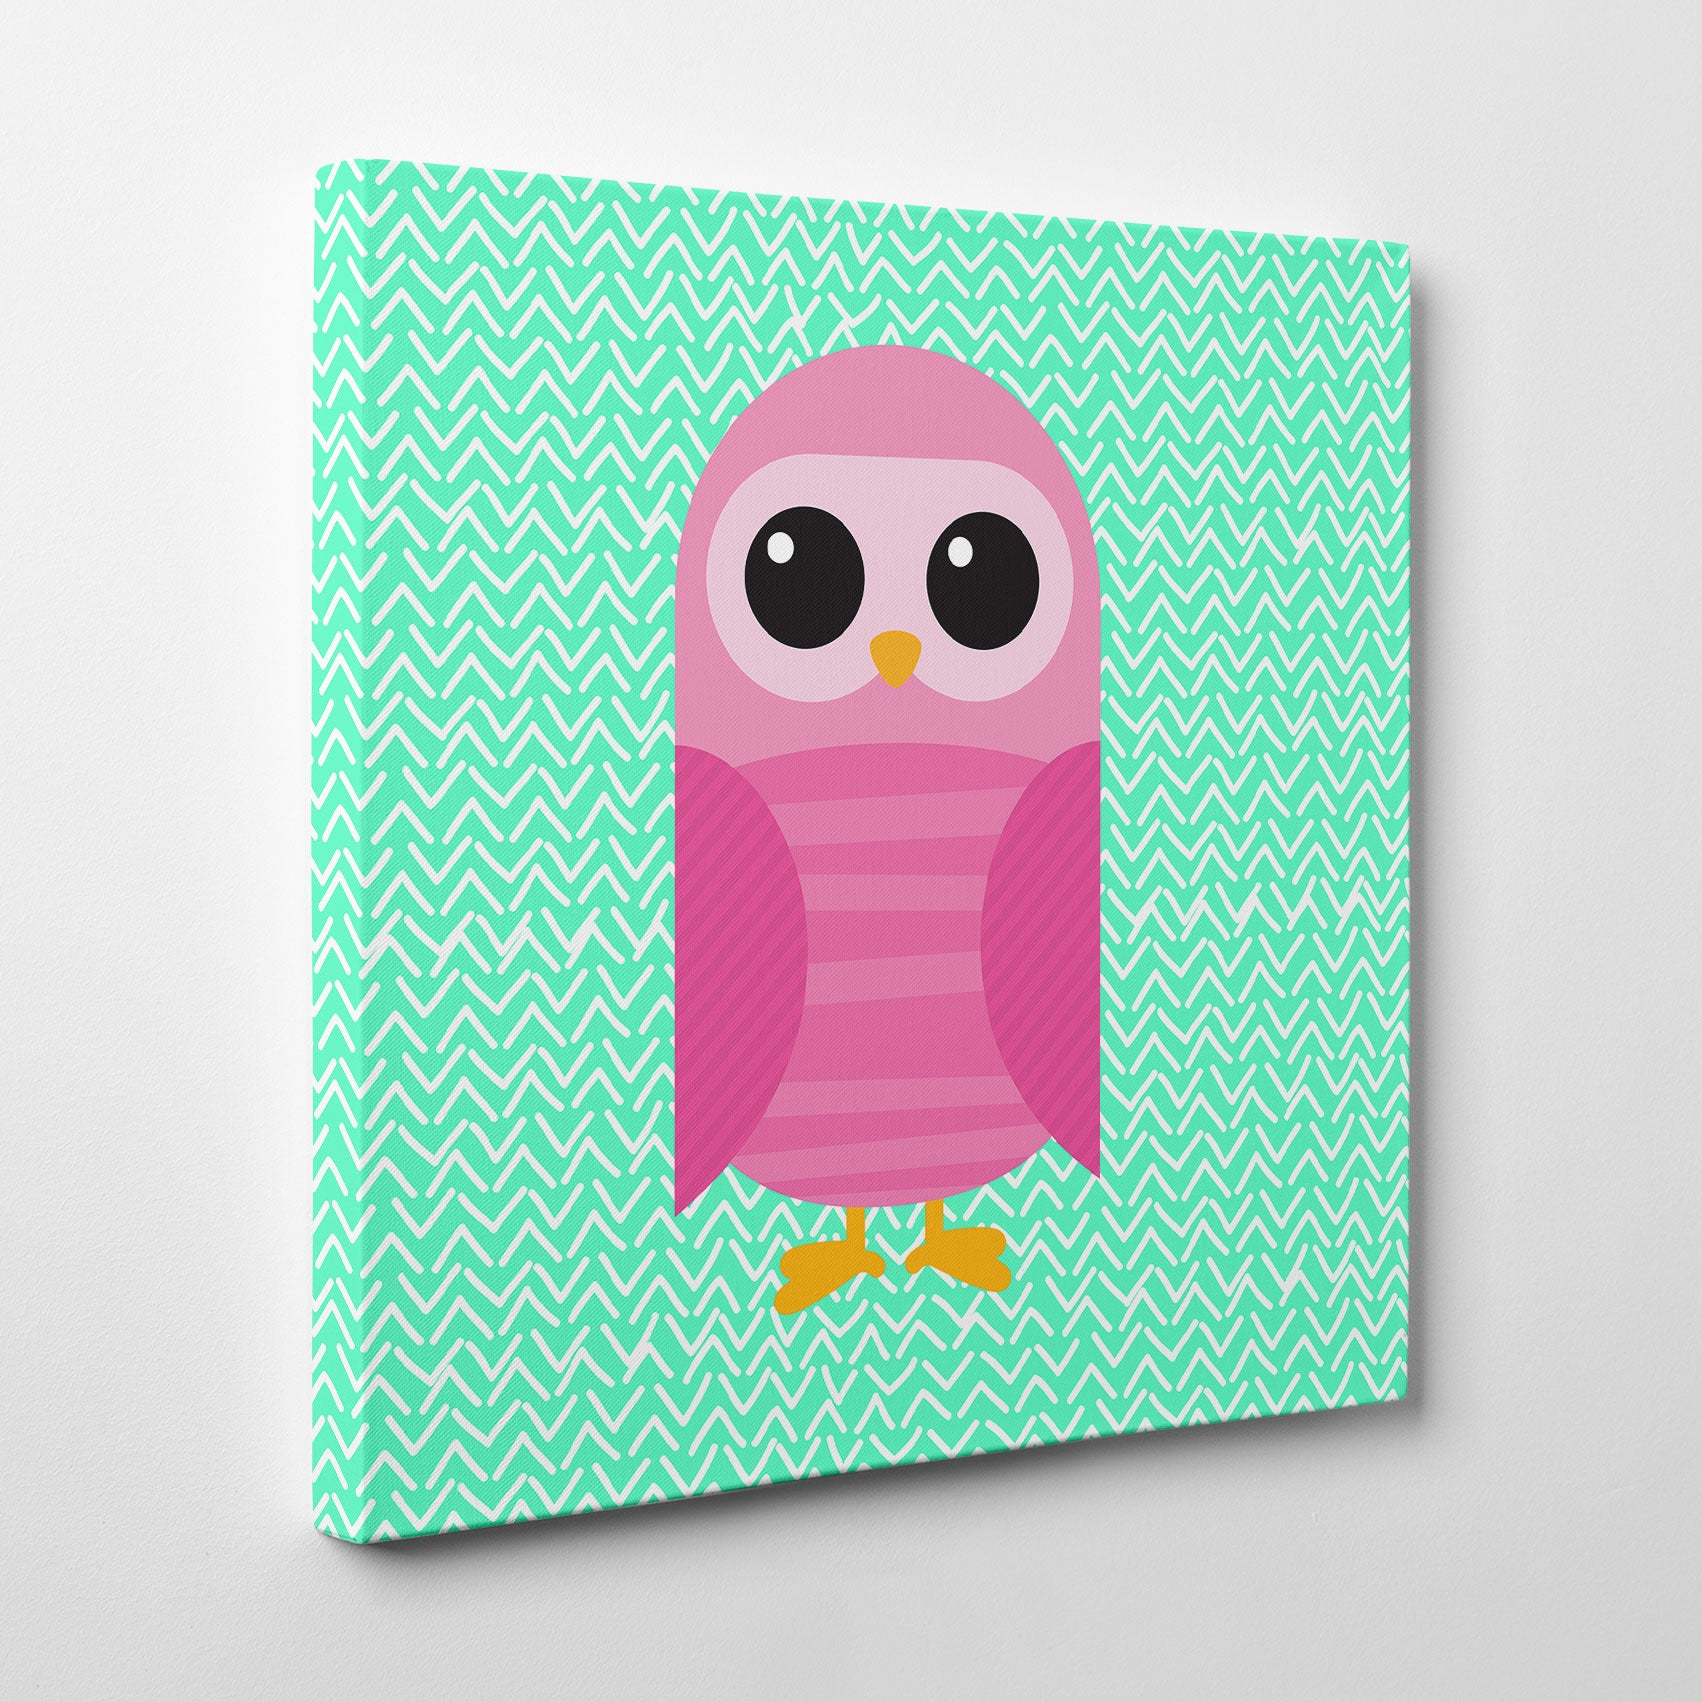 Canvas print with a pink owl on mint patterned background - side view